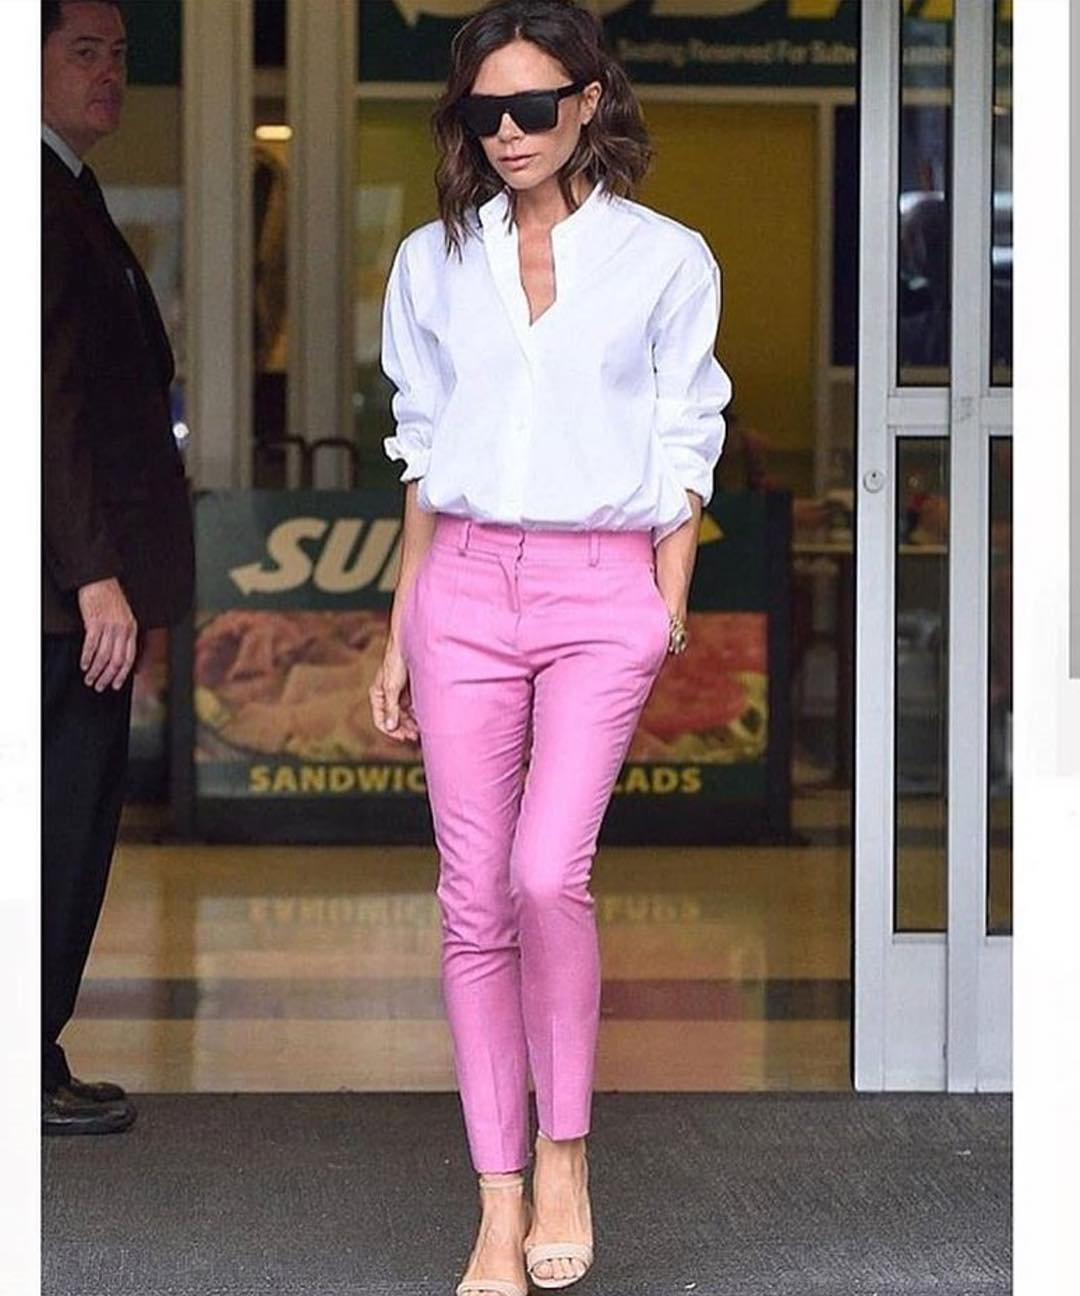 Dressy Outfit For Summer White Shirt And Pink Tailored Pants 2019